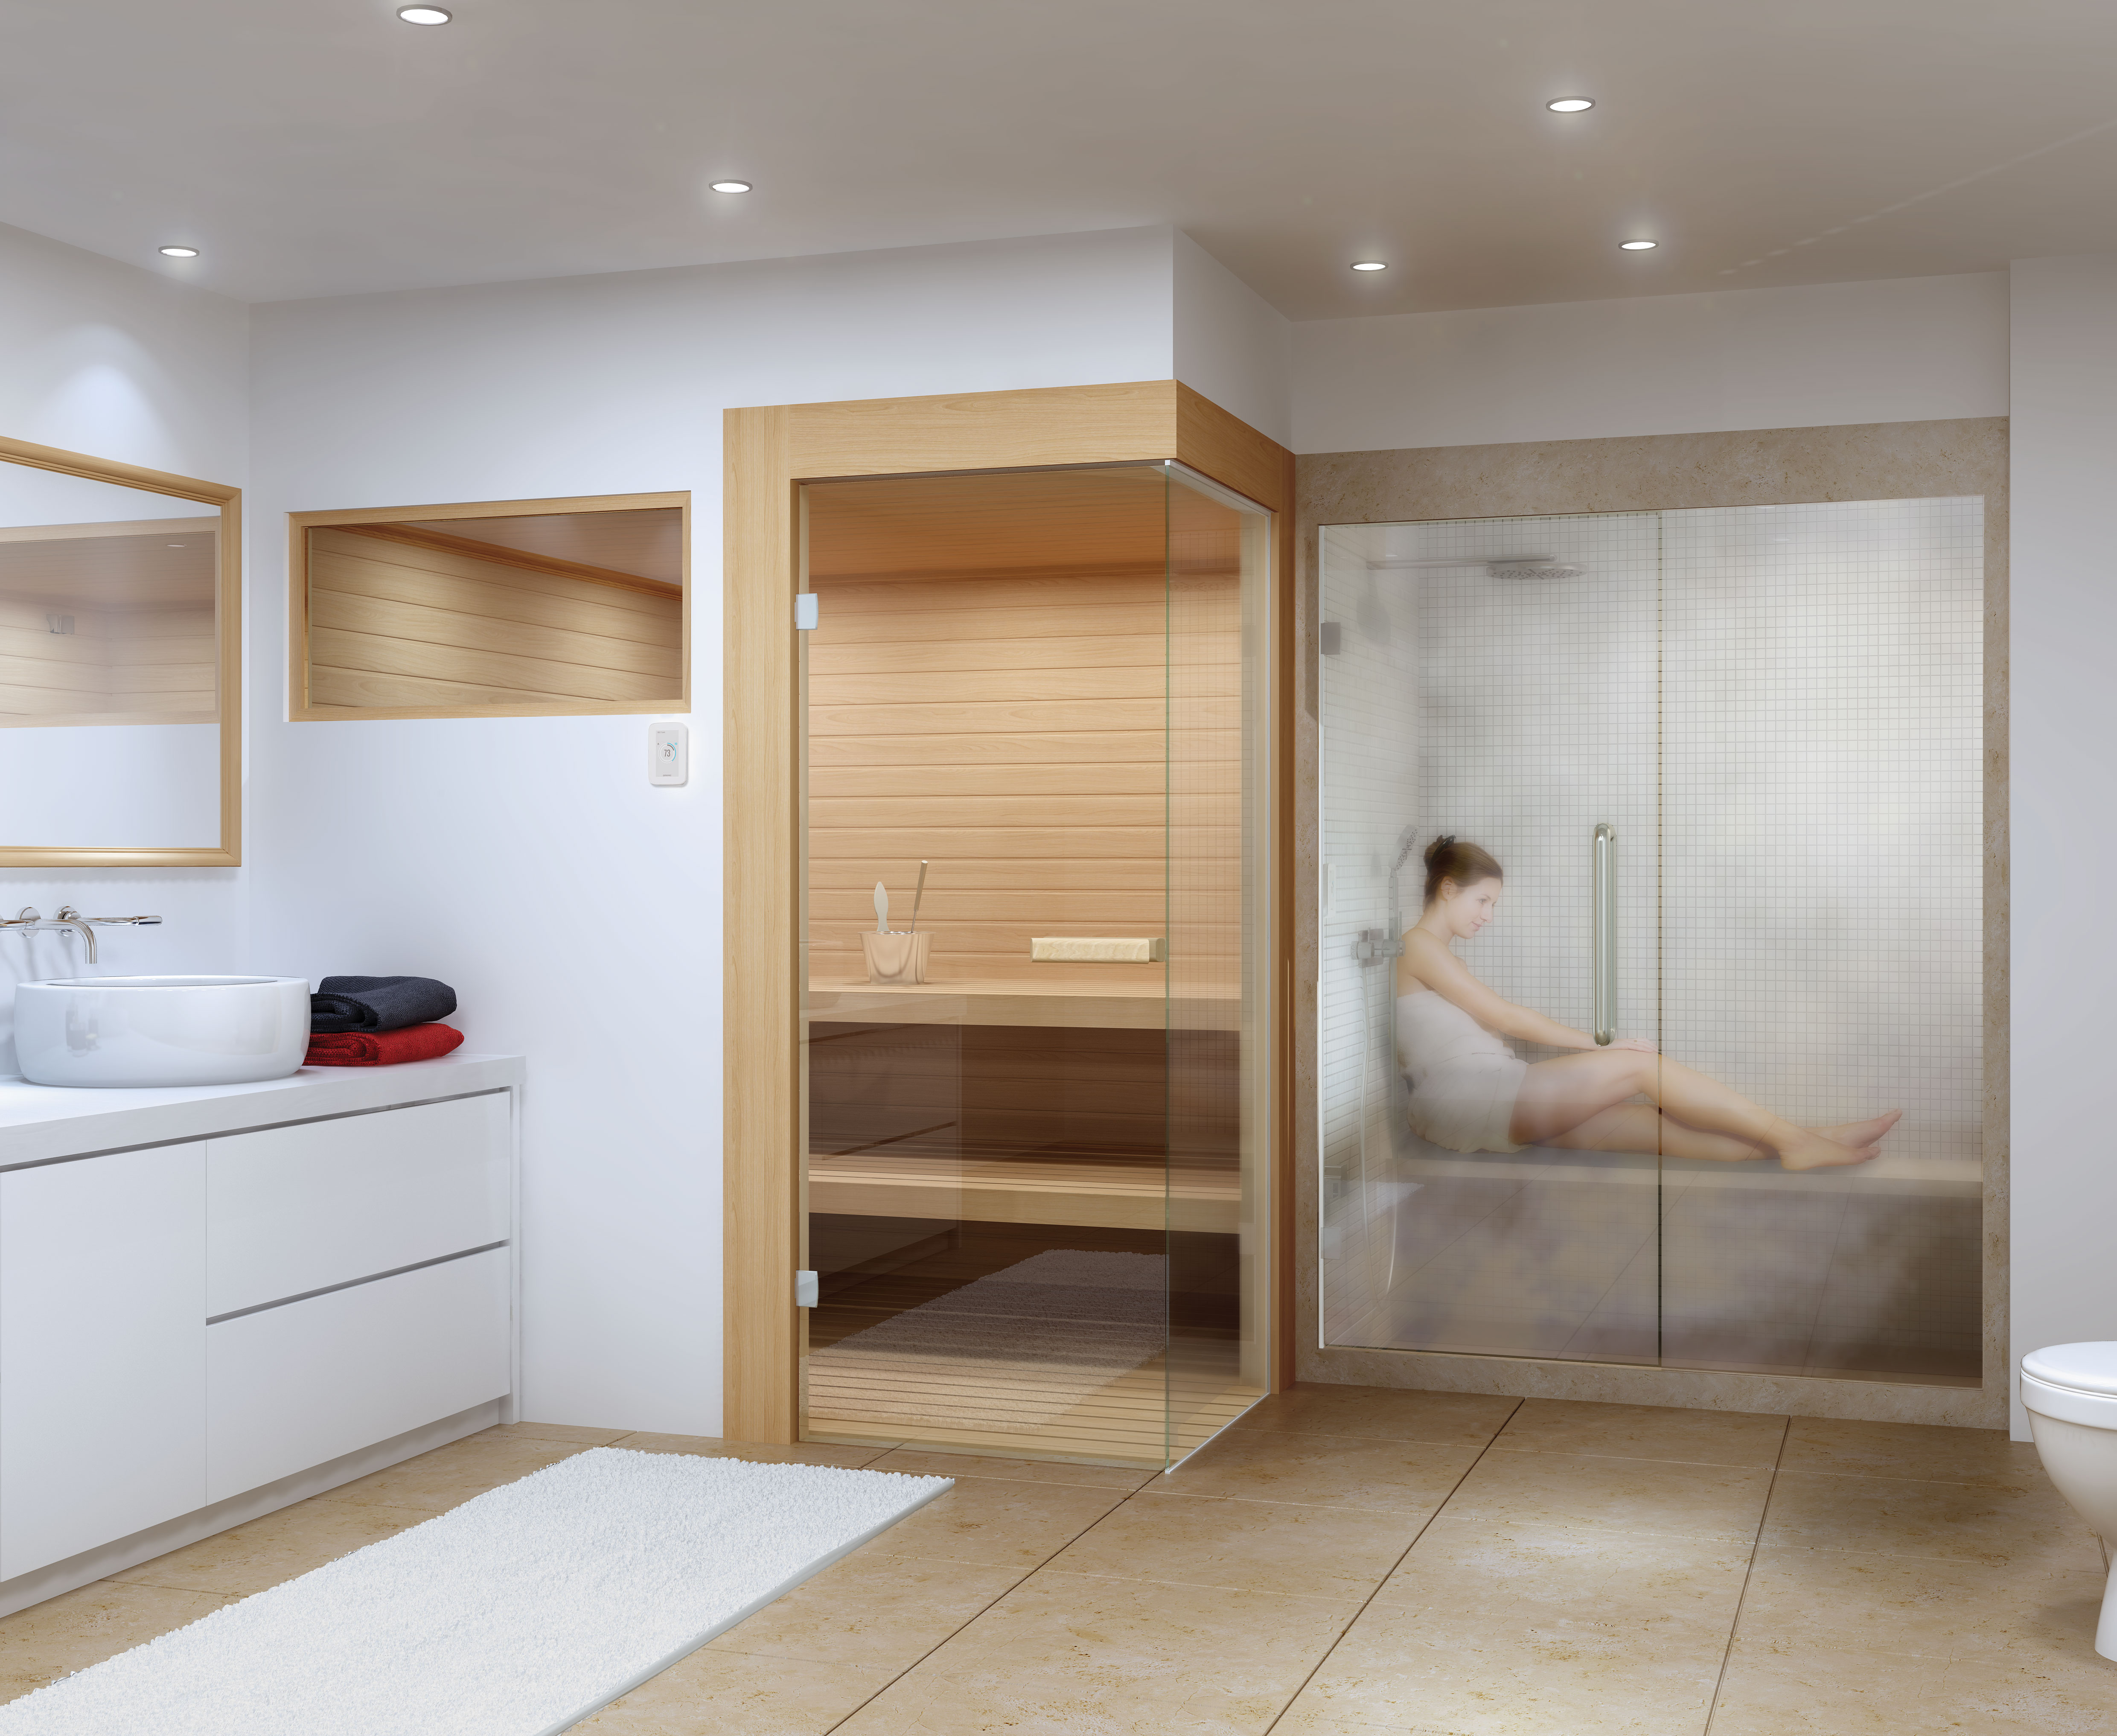 How Steam Showers And Saunas Prevent Common Colds And Give Symptom